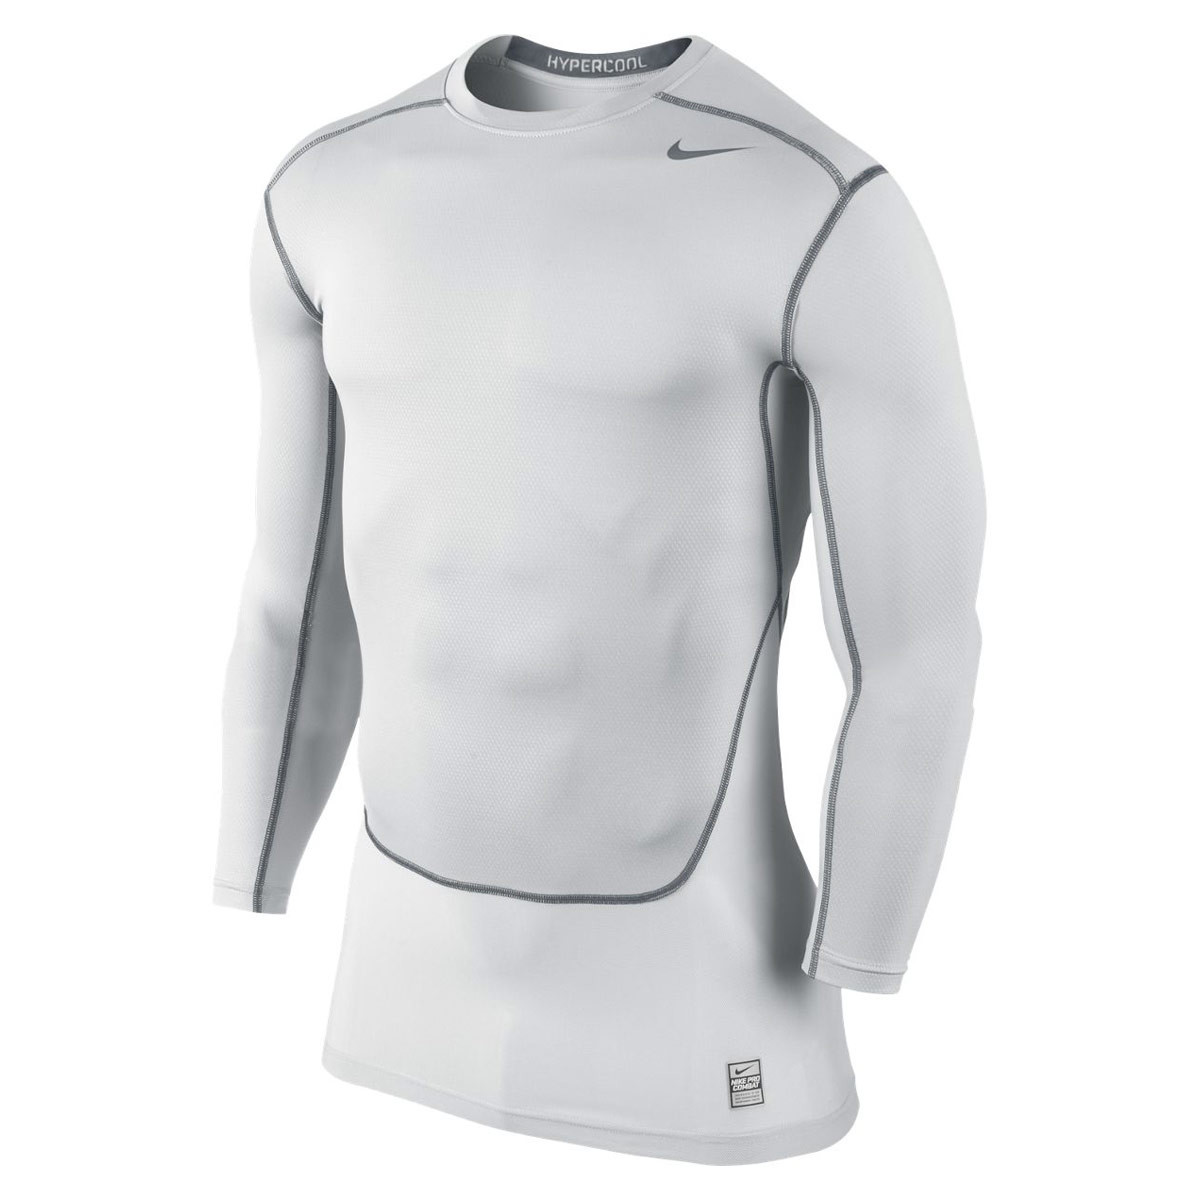 174e13ad Nike Pro Combat Hypercool Compression Long-Sleeve - Running tops for Men -  Grey | 21RUN